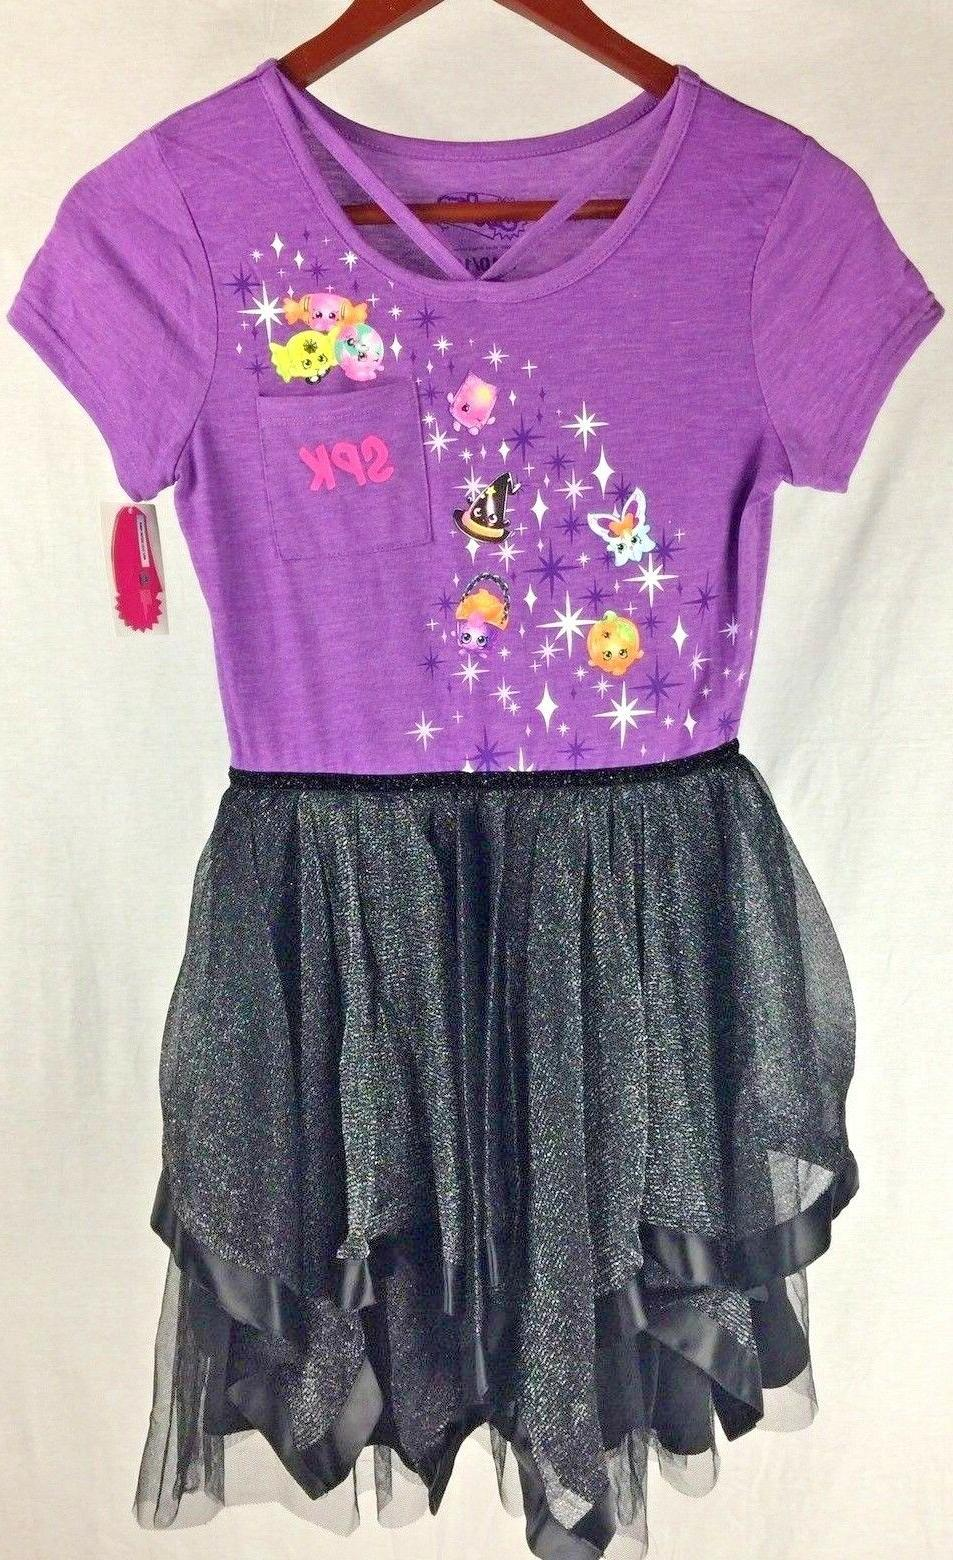 spk girls halloween t shirt dress purple